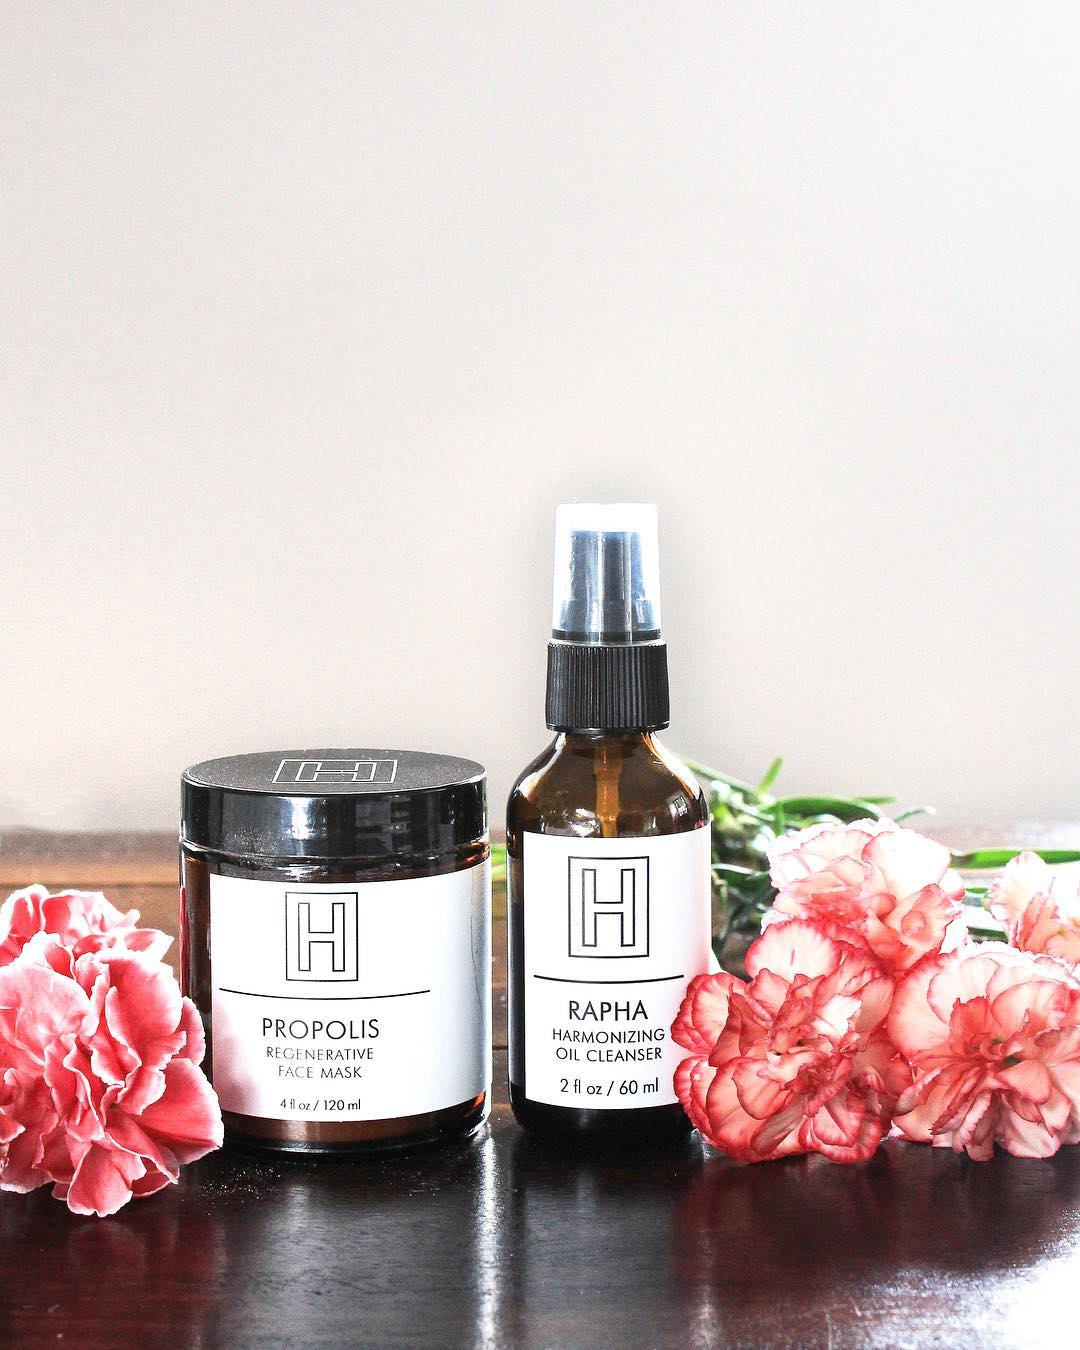 H IS FOR LOVE So Natural Beauty RAPHA Harmonizing Oil Cleanser and PROPOLIS Regenerative Face Mask giveaway